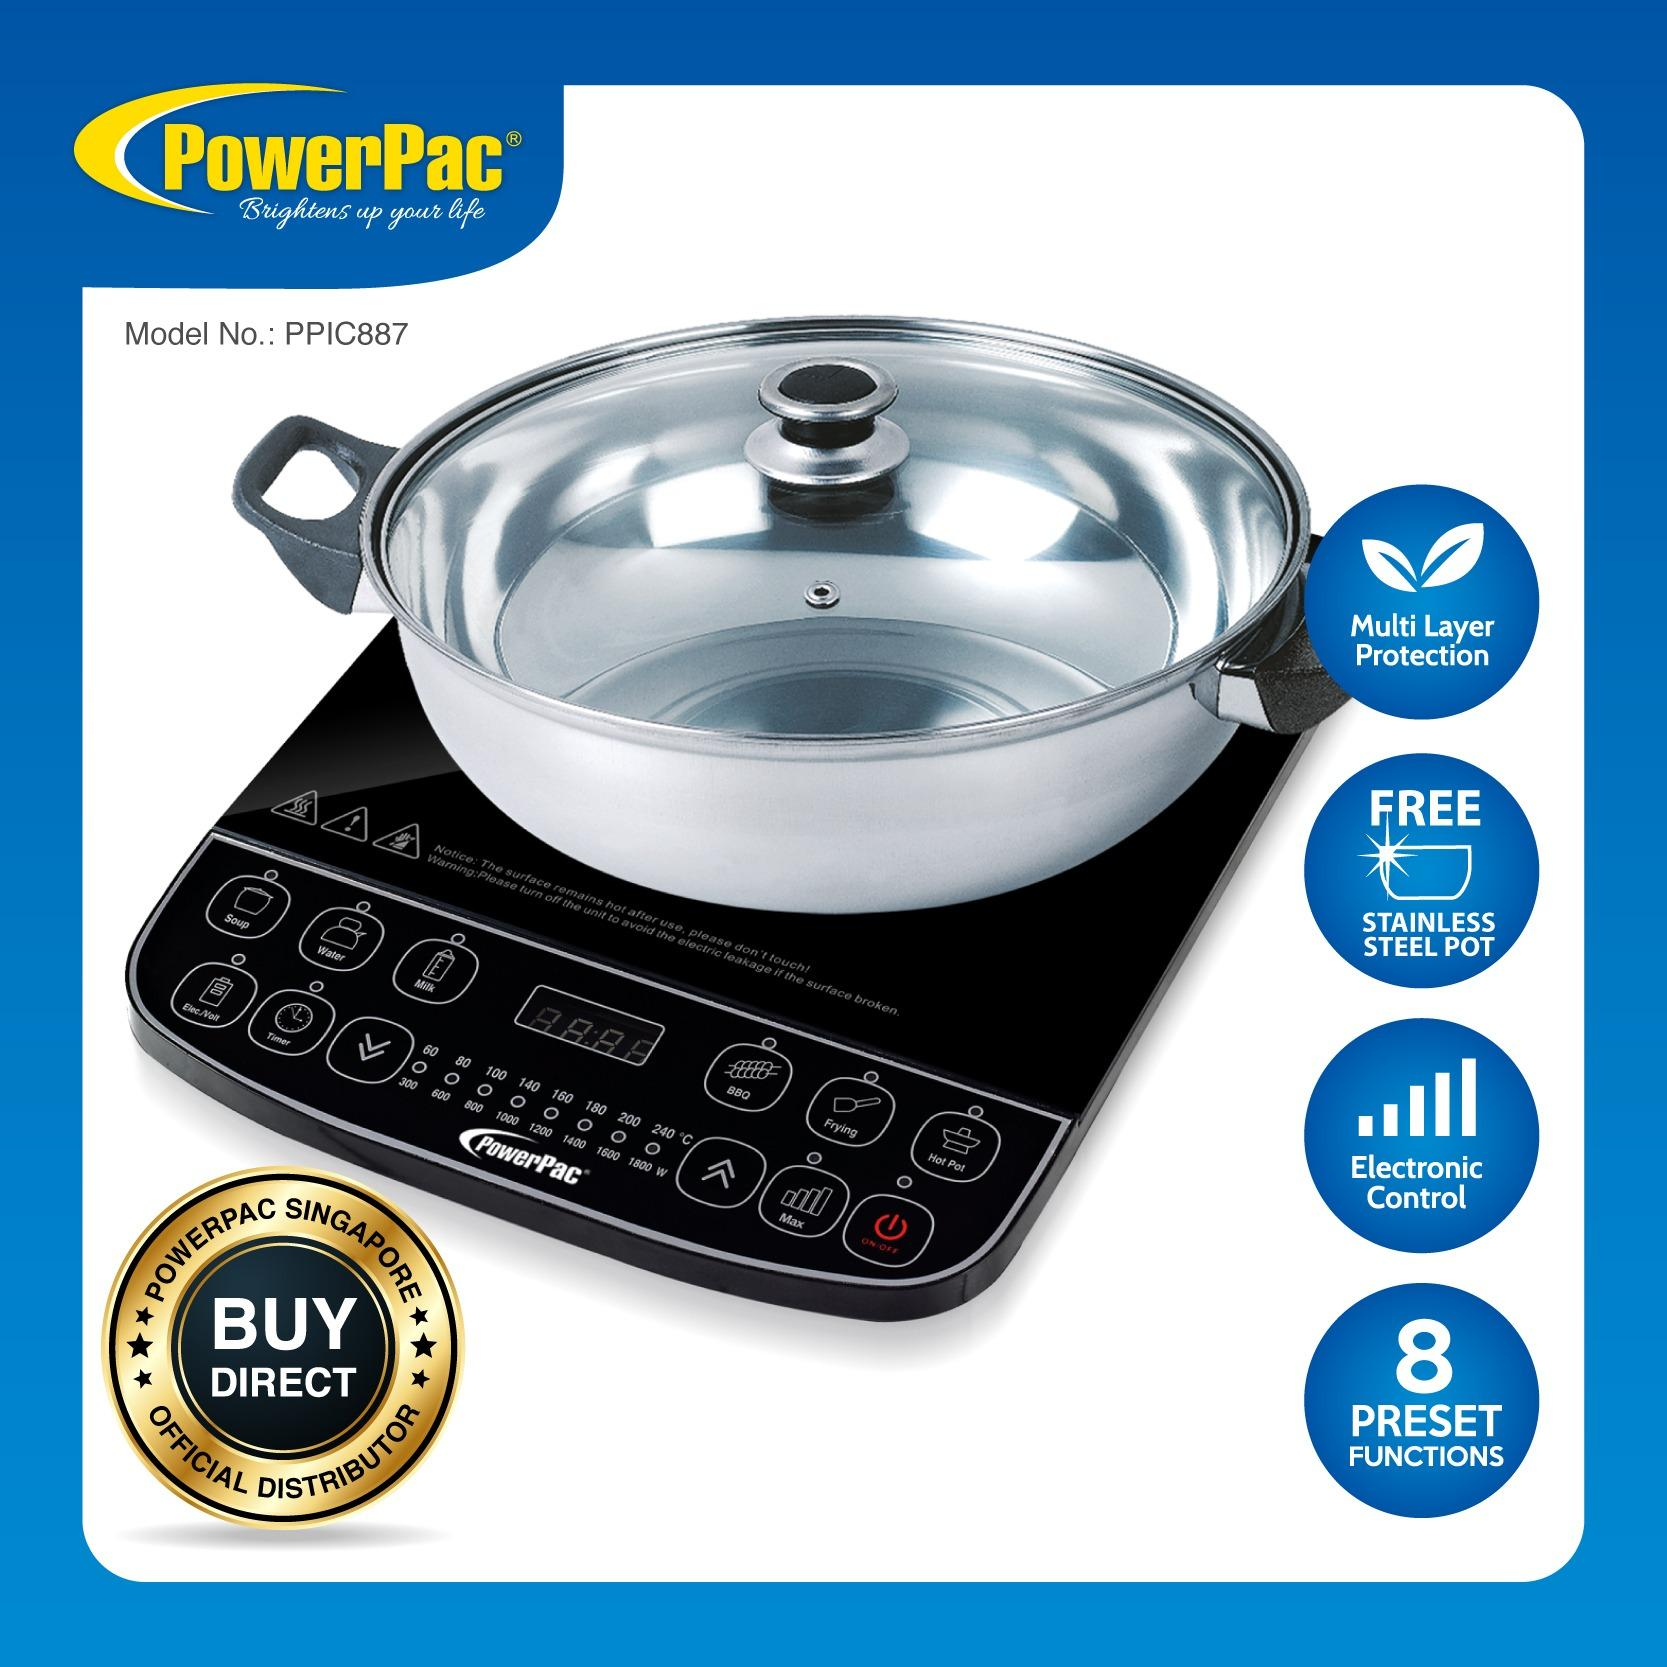 Purchase Powerpac Induction Cooker With Stainless Steel Pot Ppic887 Online